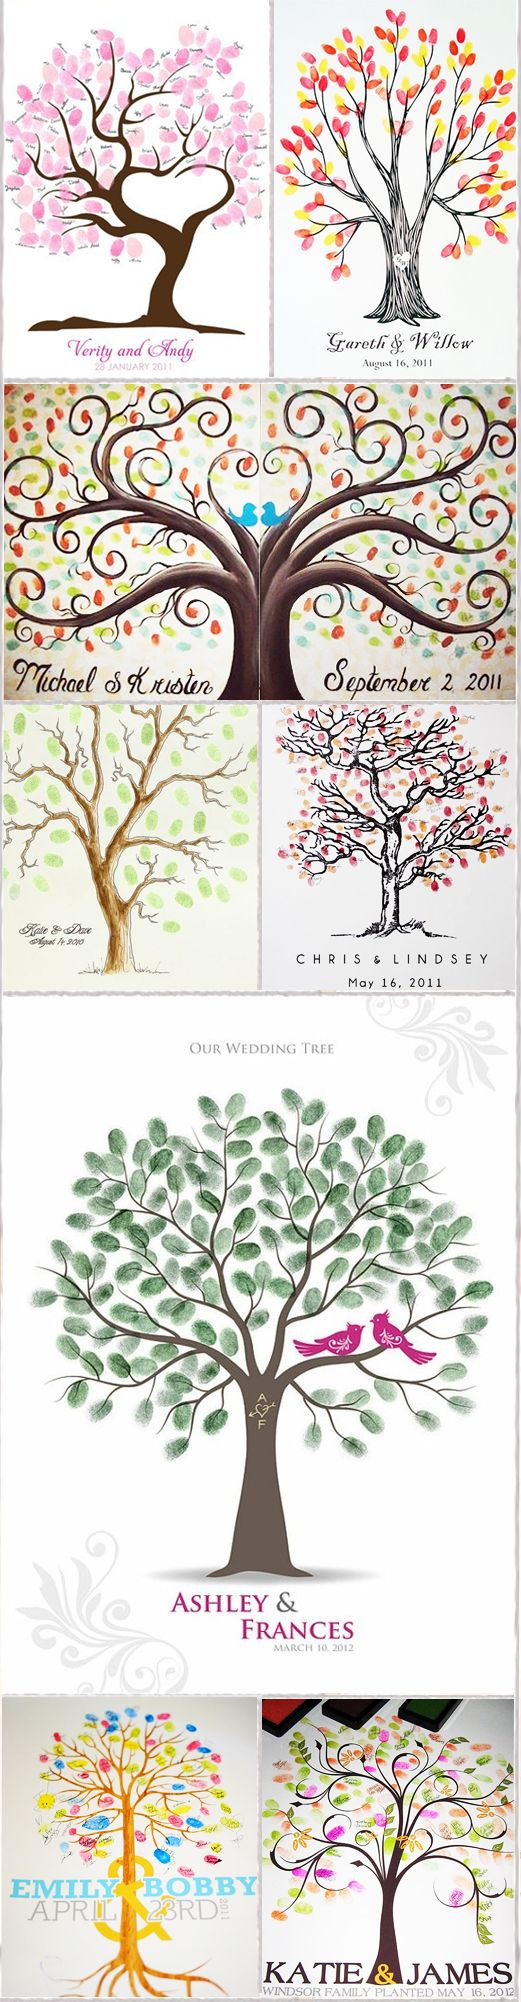 Wedding Tree~The leaves are made of fingerprints from each guest at the wedding!